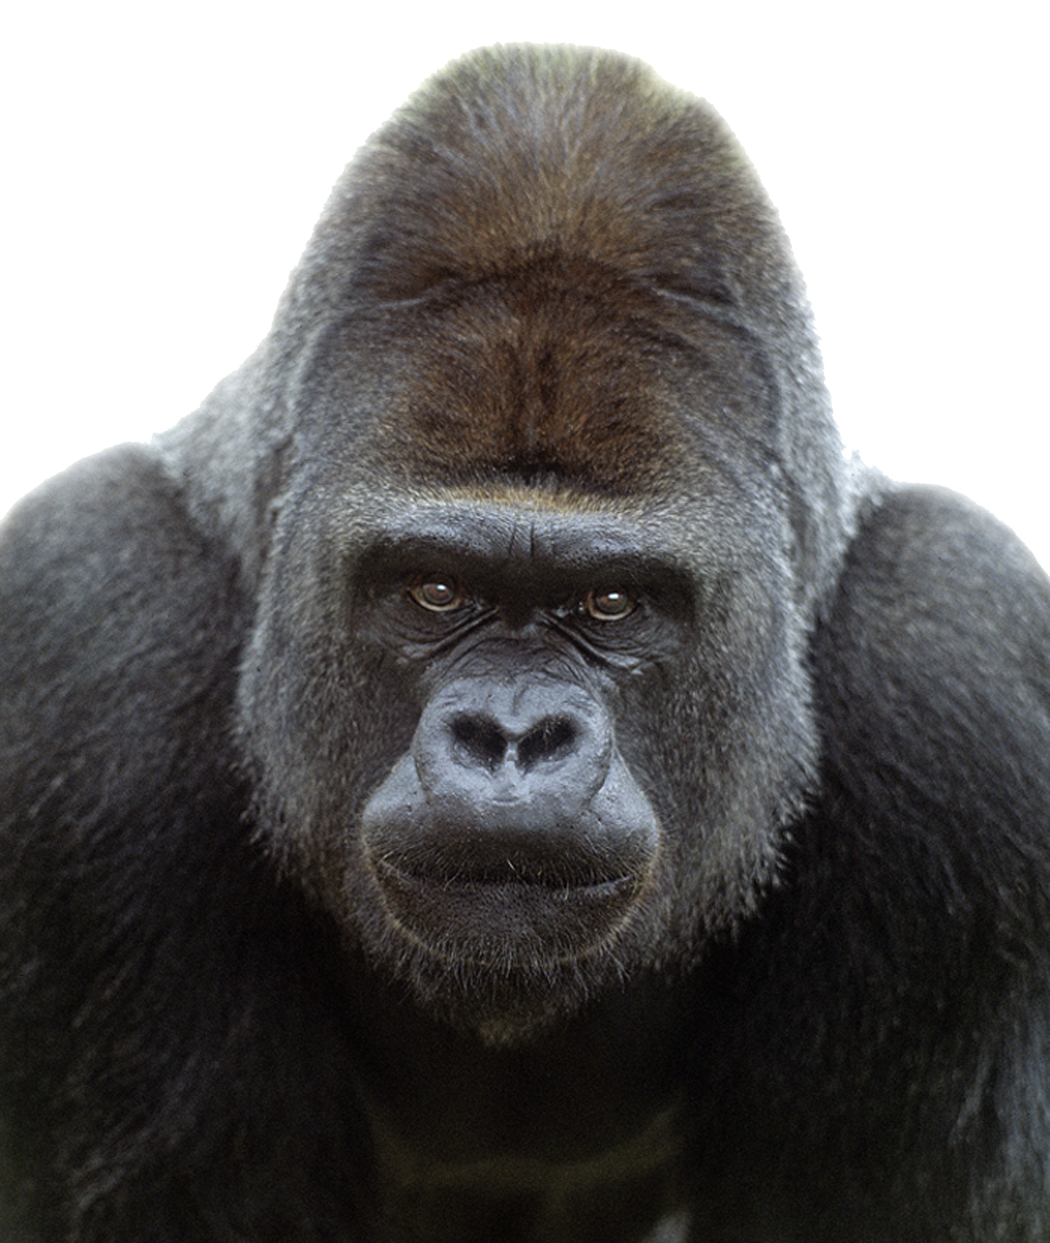 Gorilla face png. Images transparent free download